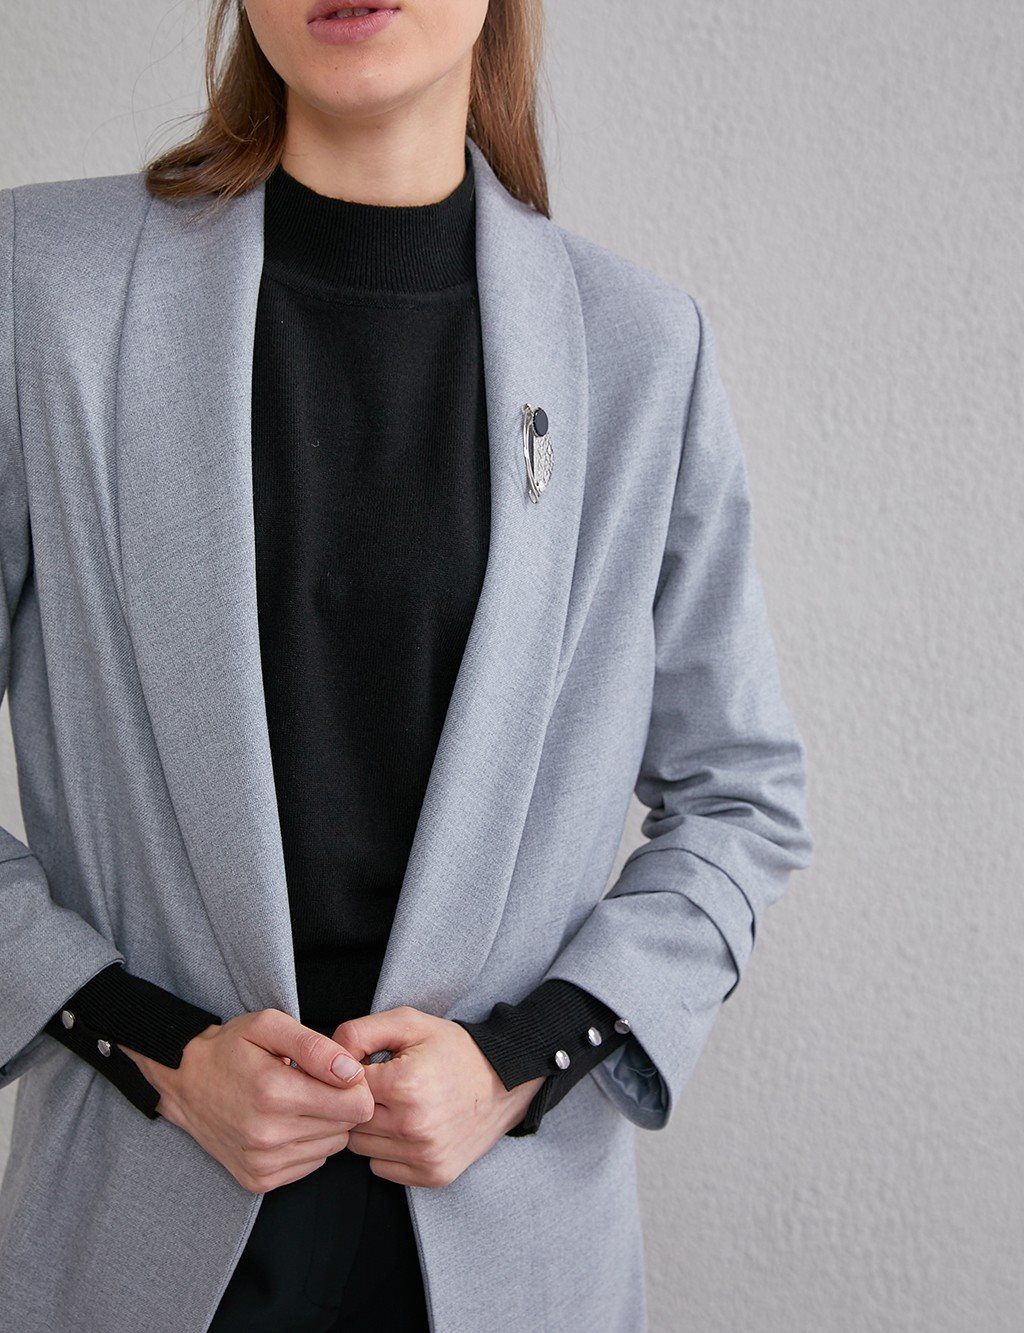 Double Breasted Collar Jacket With Badge A20 13073 Gray